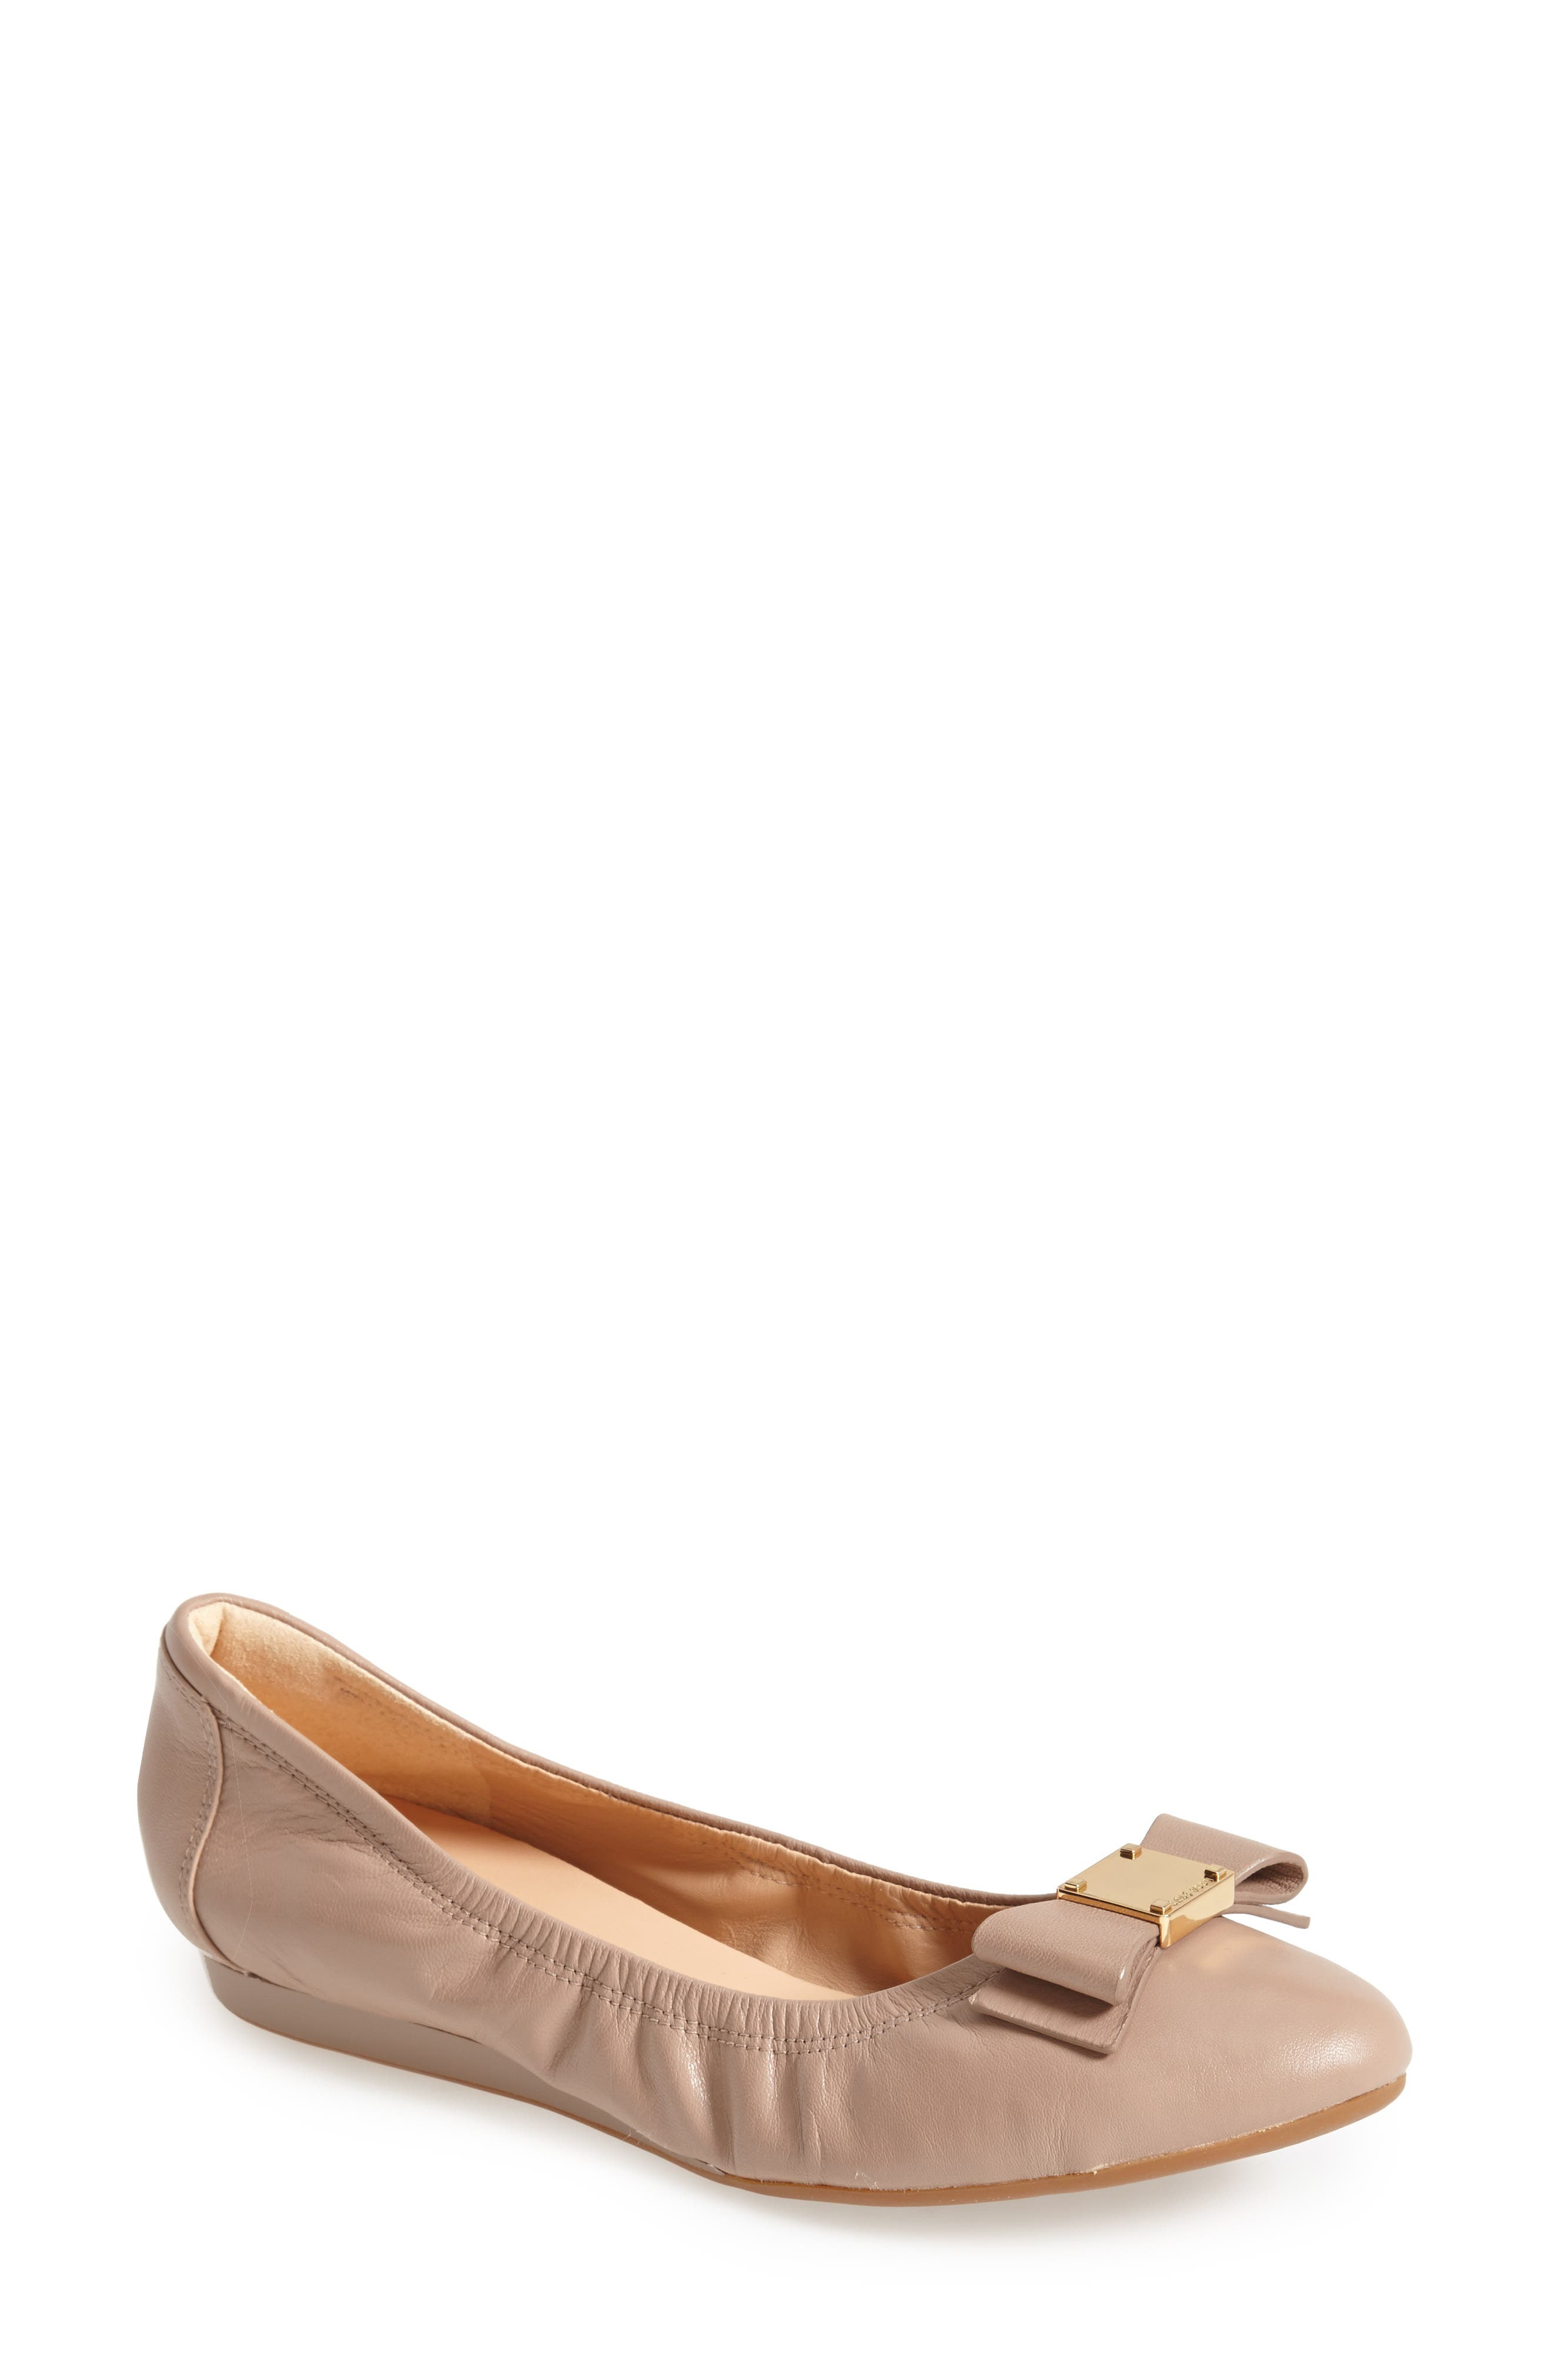 COLE HAAN, 'Tali' Bow Ballet Flat, Main thumbnail 1, color, MAPLE SUGAR